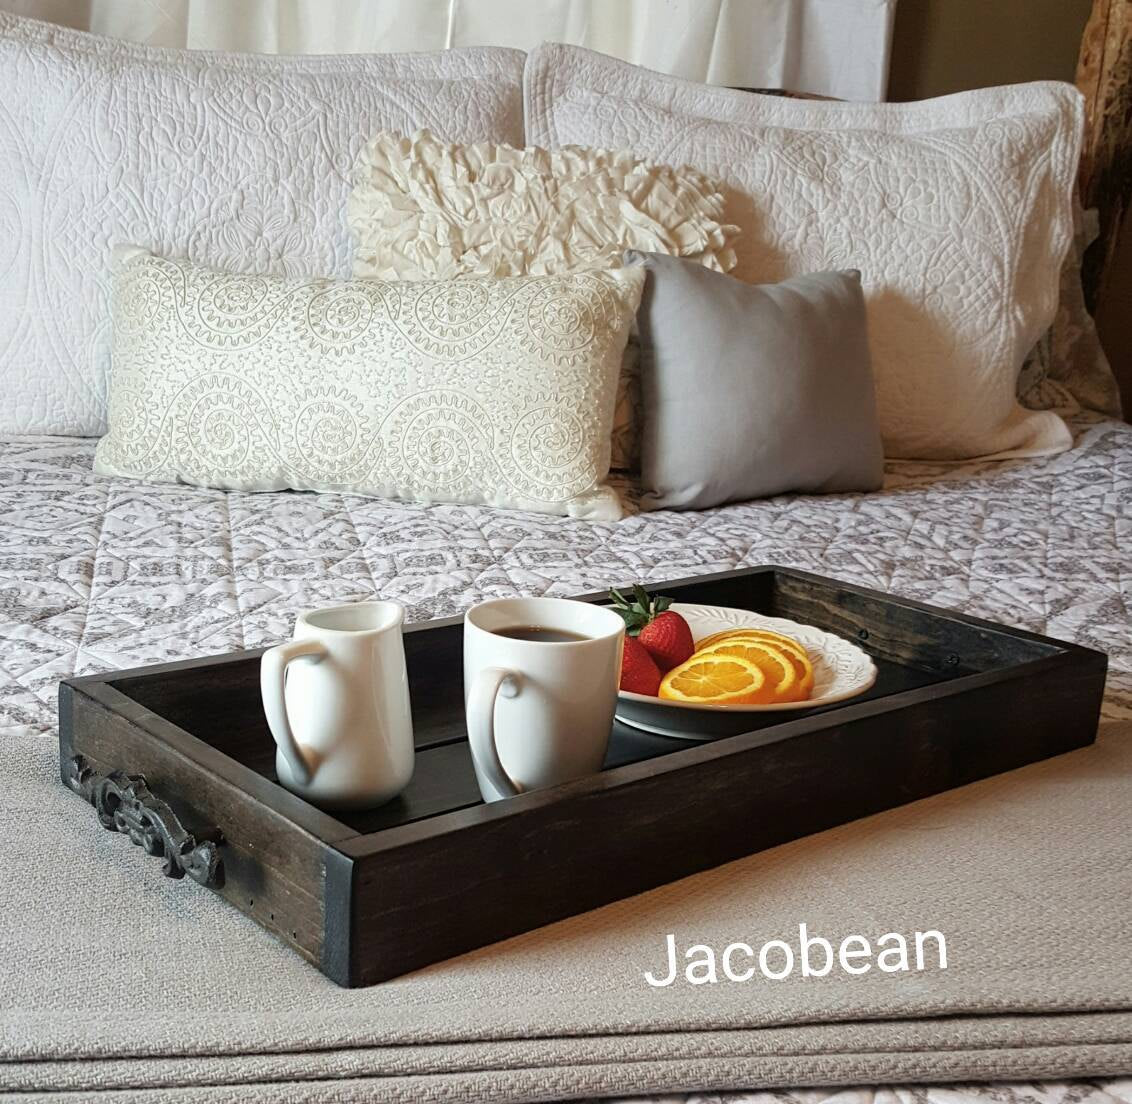 12 x 24 Magazine Tray - Coffee Table Tray - Rustic wooden ottoman tray - decorative tray - coffee table tray - farmhouse decor - wooden tray